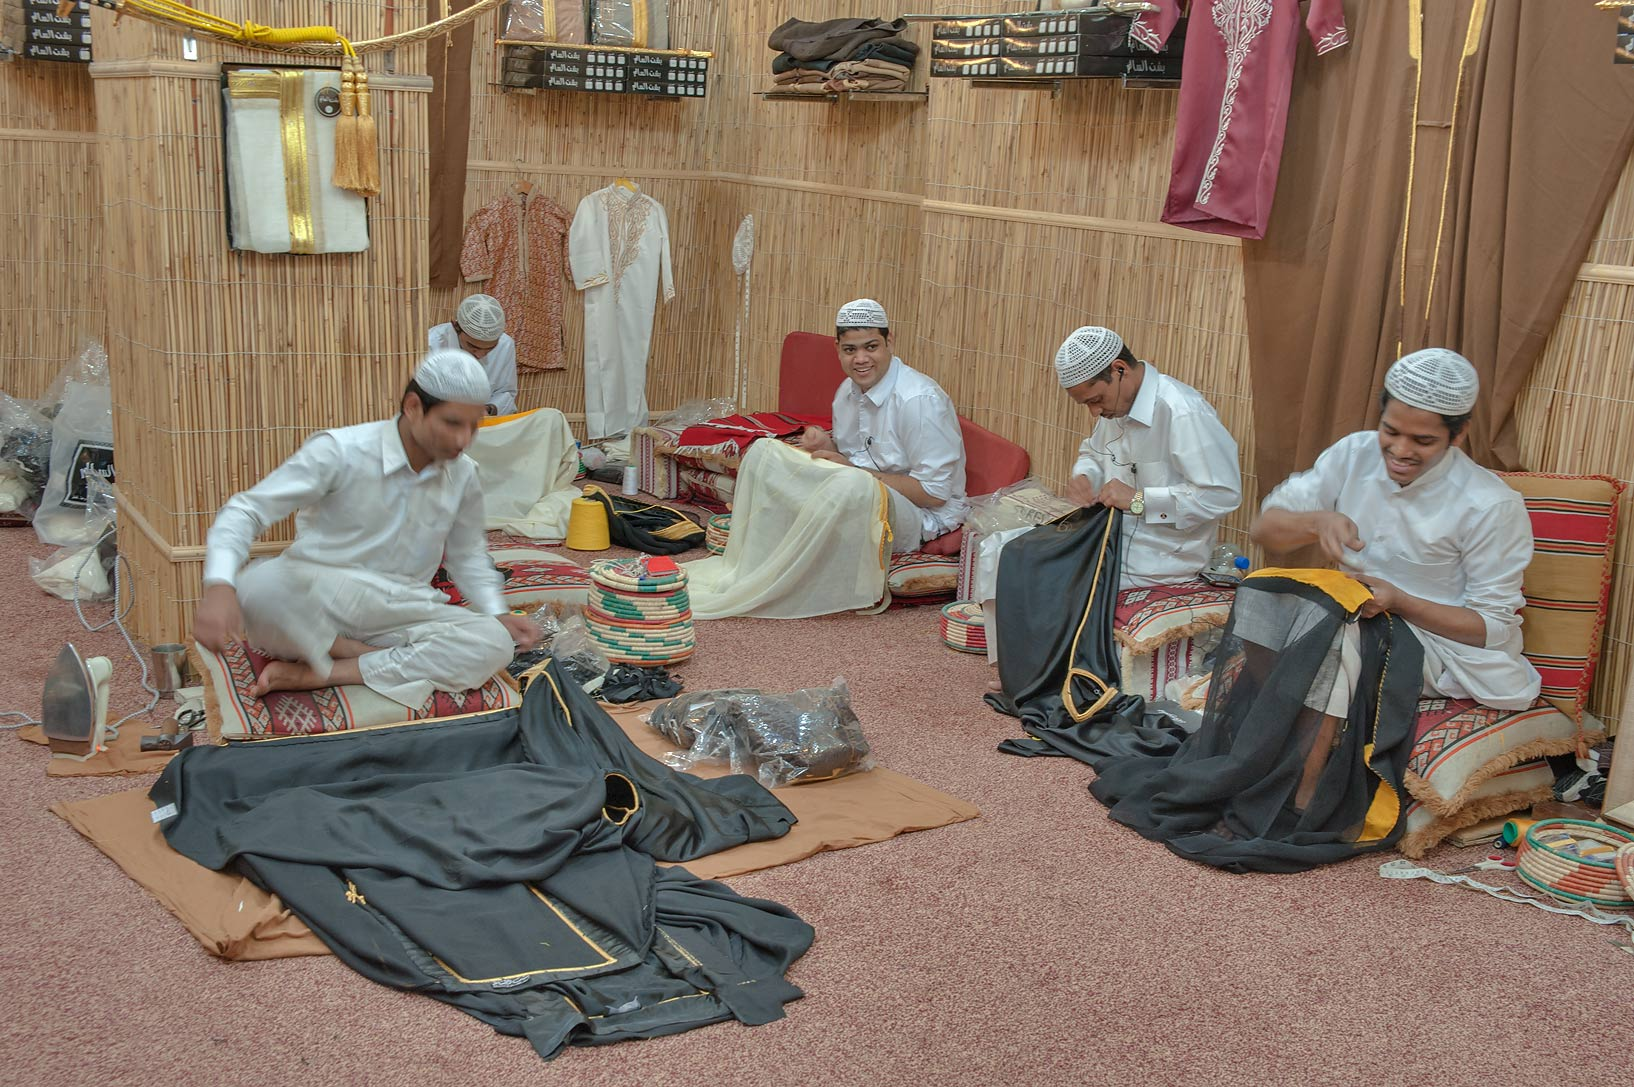 Textile sewing shop in Souq Waqif (old market). Doha, Qatar